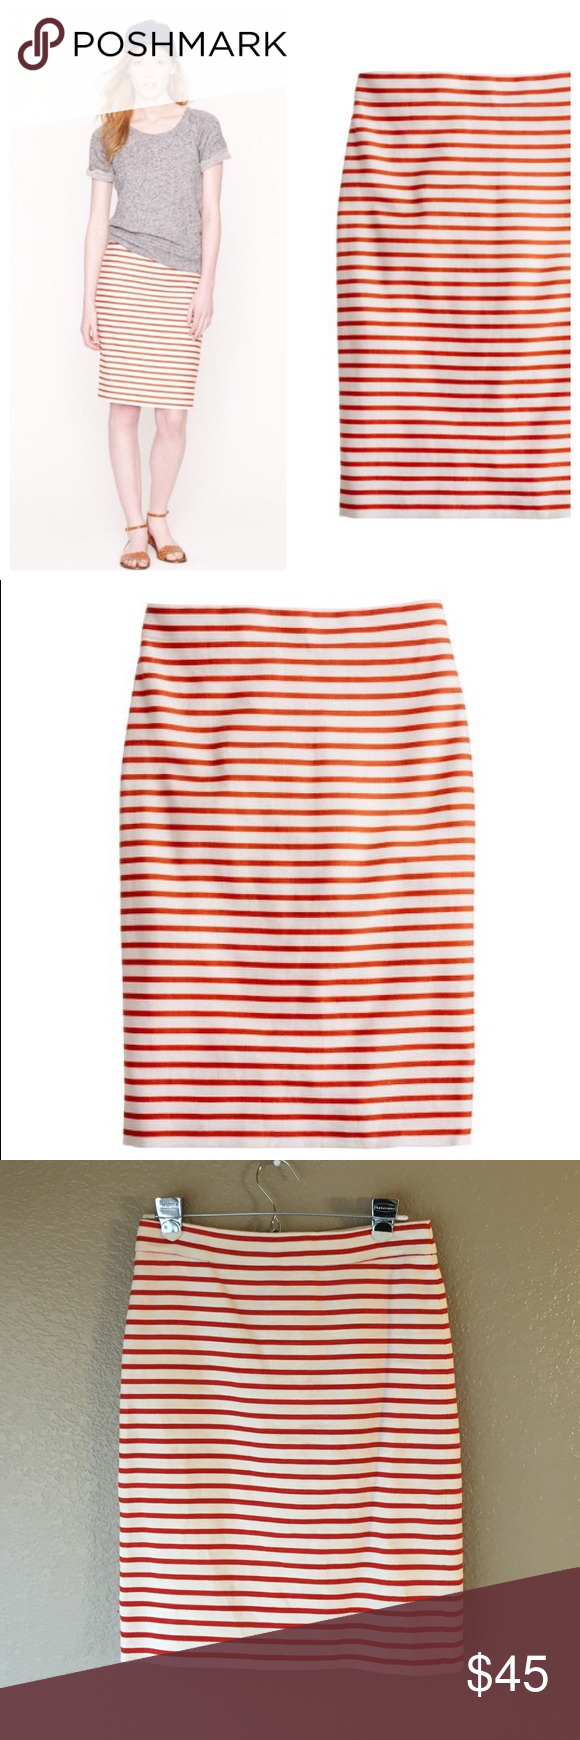 "J. Crew No. 2 Pencil skirt J. Crew No. 2 Pencil skirt in deck stripe. Size 0. Creamy linen with a rusty orange-red stripe. 55% linen, 45% cotton, lining is 97% cotton 3% spandex. Back zipper closure and slit. Excellent condition, worn once. A great staple piece. Approx. Waist 14"" across, hips 16"" across, length 21"". J. Crew Skirts Pencil"